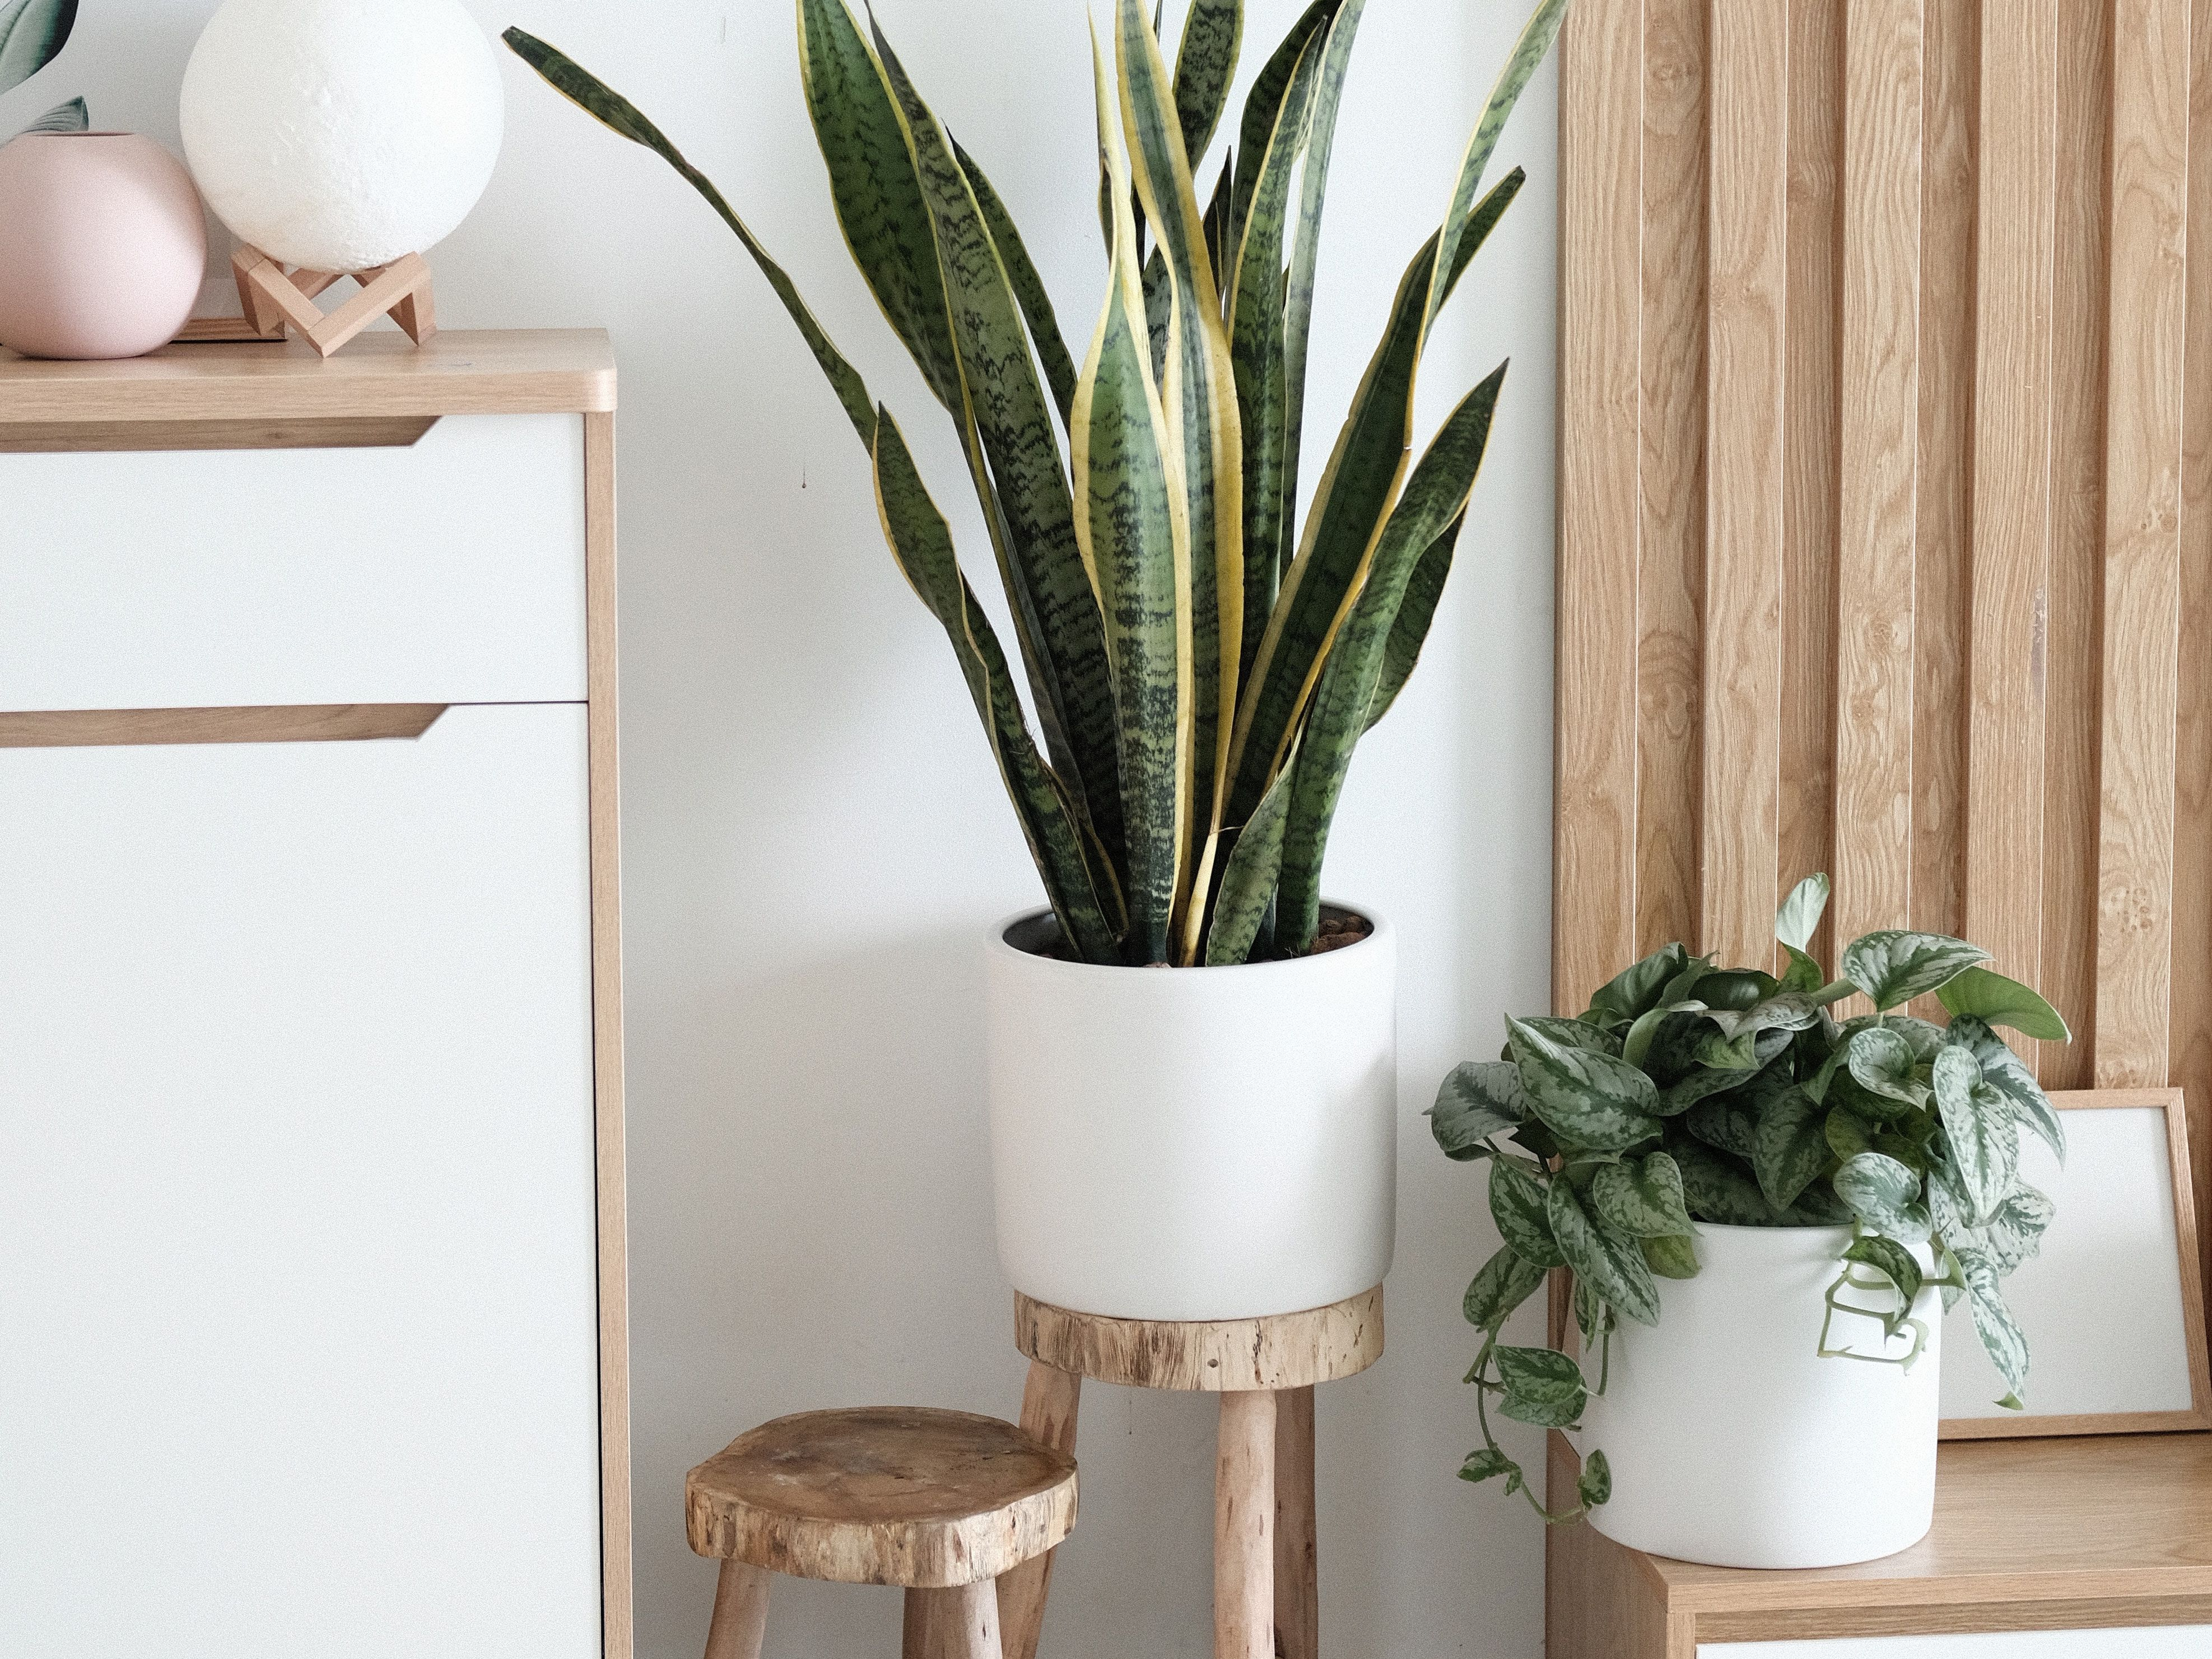 Sansevieria Plant Feng Shui good and bad feng shui plants